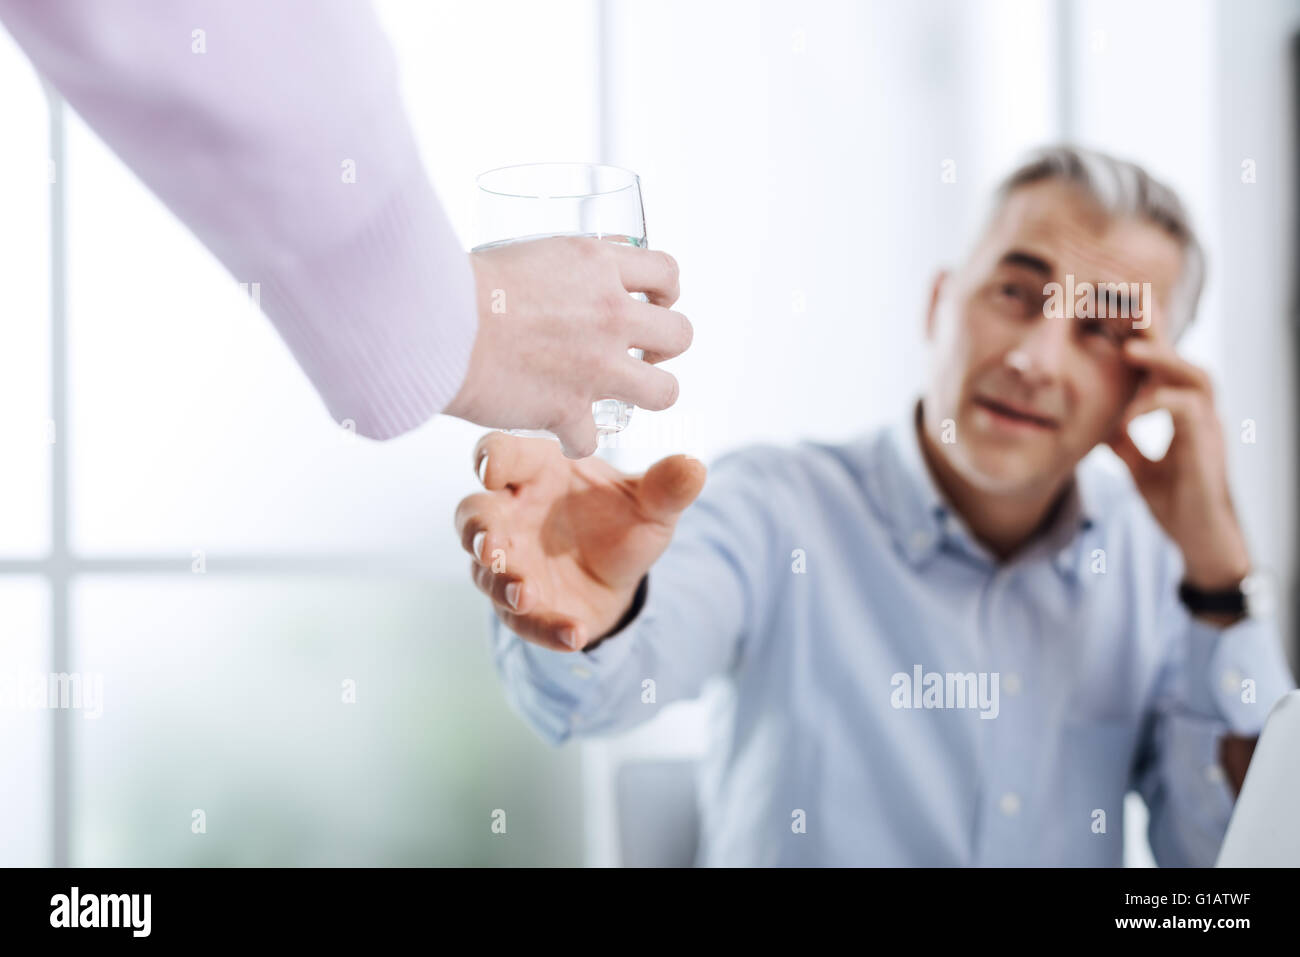 Exhausted businessman working in his office and having a headache, his assistant is handing him a glass of water, - Stock Image